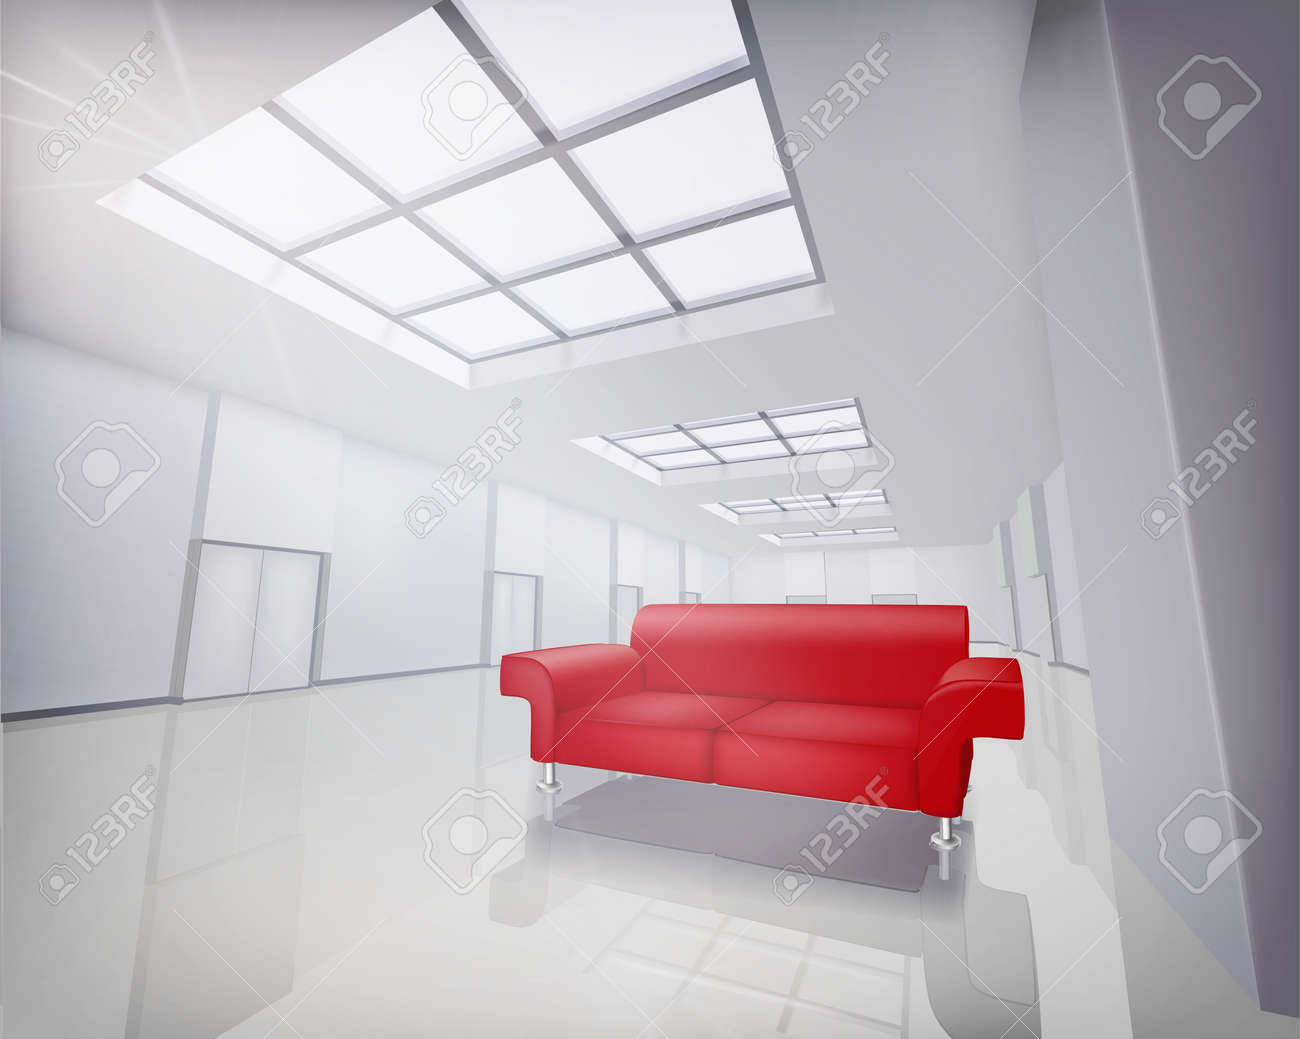 Room with red sofa   Vector illustration Stock Vector - 20882279